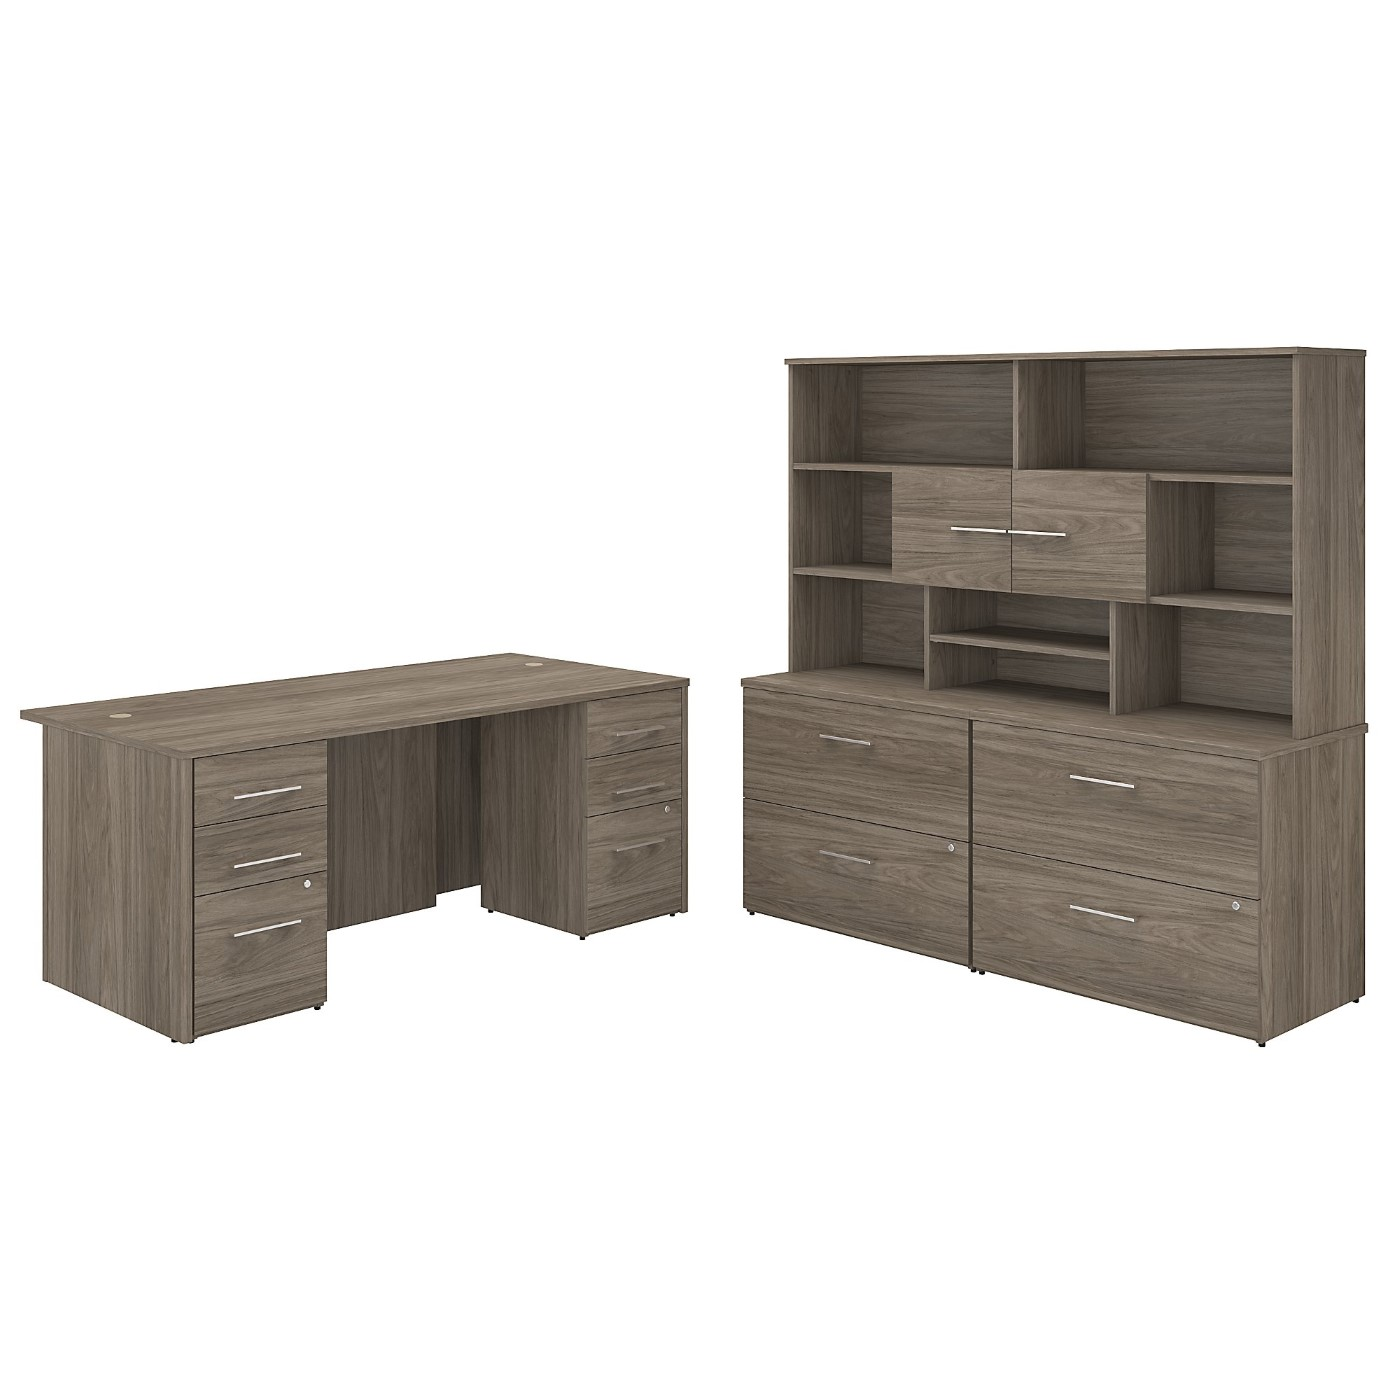 BUSH BUSINESS FURNITURE OFFICE 500 72W X 36D EXECUTIVE DESK WITH DRAWERS, LATERAL FILE CABINETS AND HUTCH. FREE SHIPPING SALE DEDUCT 10% MORE ENTER '10percent' IN COUPON CODE BOX WHILE CHECKING OUT.